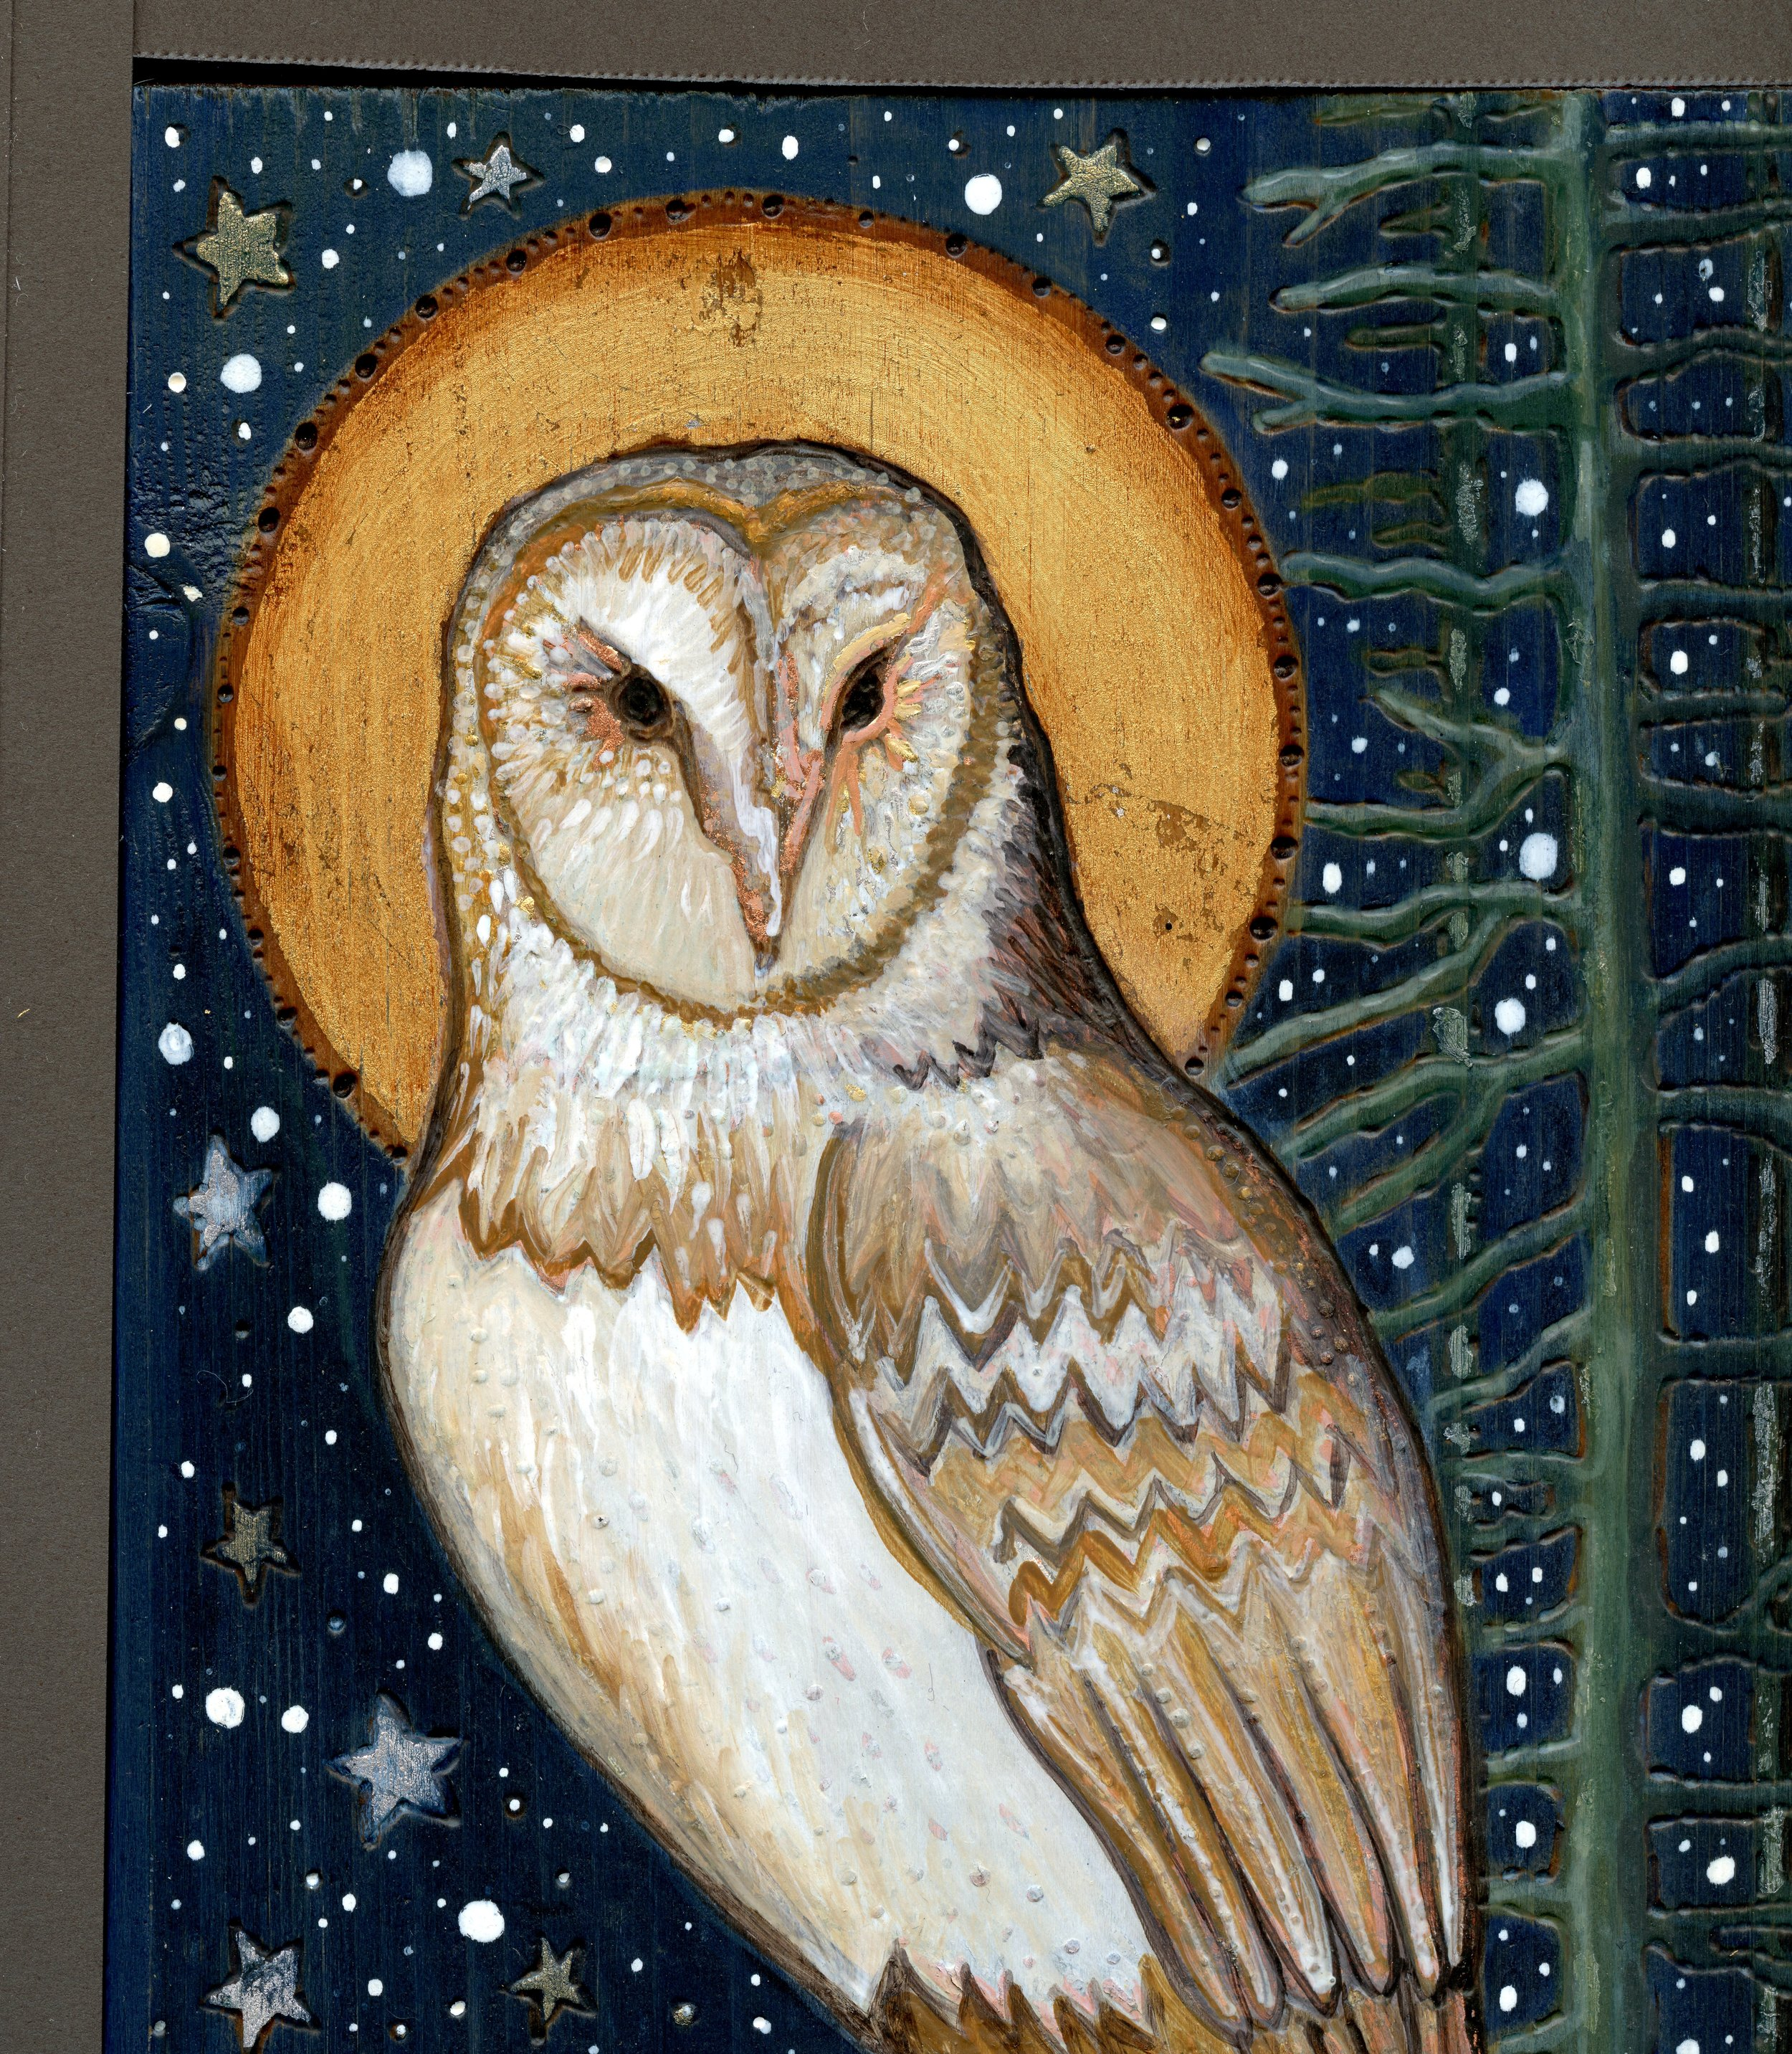 Night Owl - For Sale